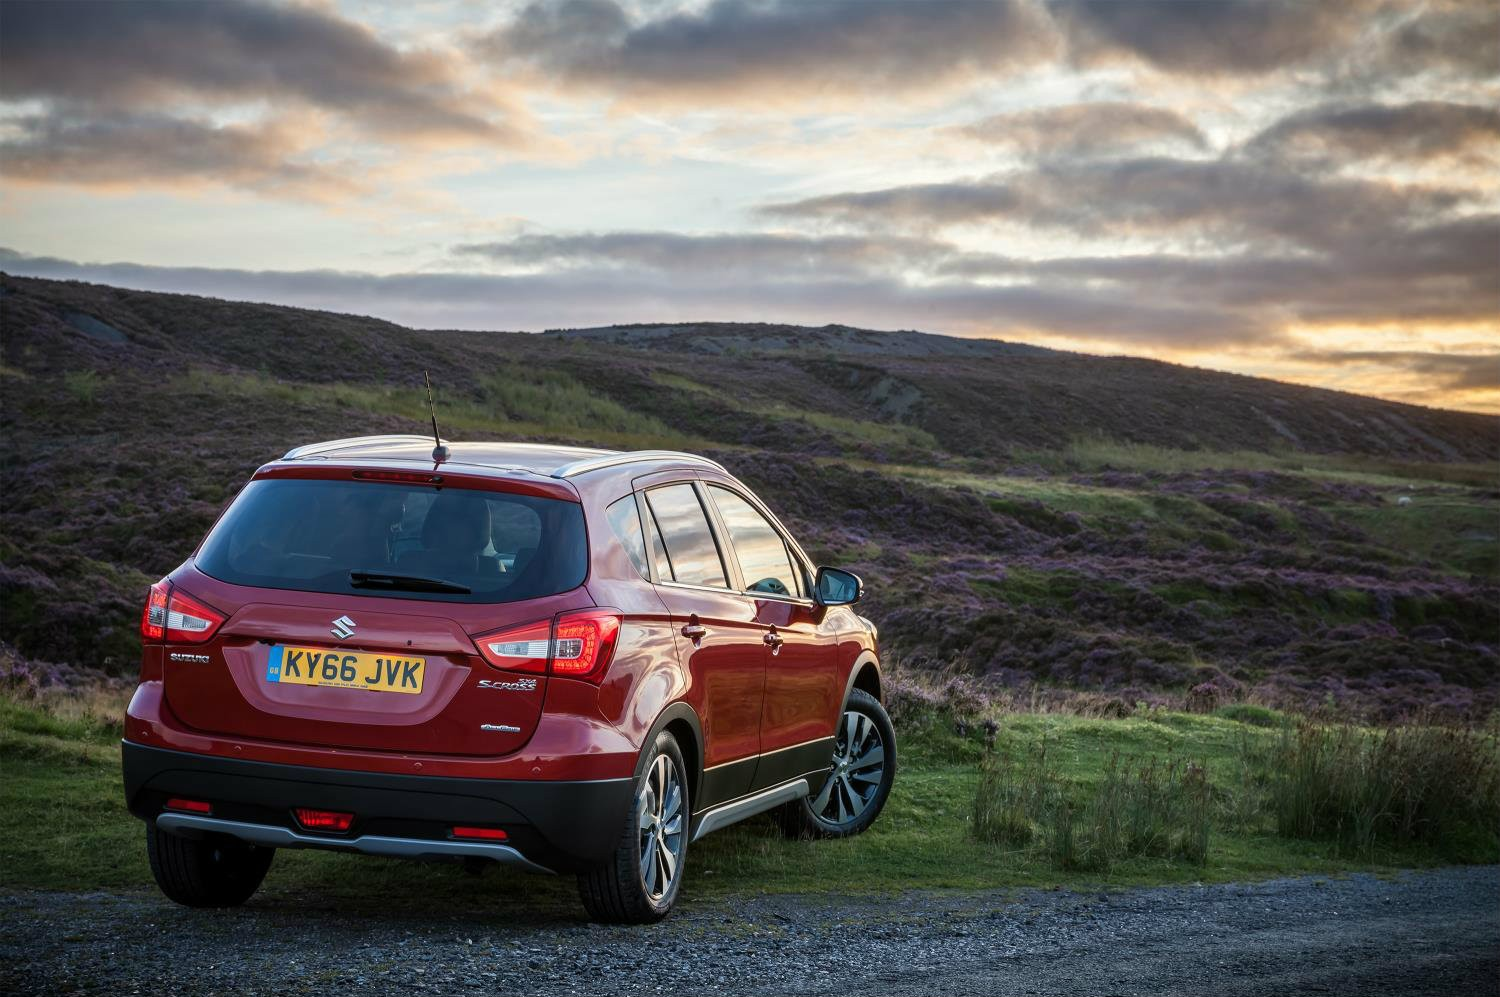 2017 Suzuki SX4 S-Cross Facelift Priced From £14,999 In